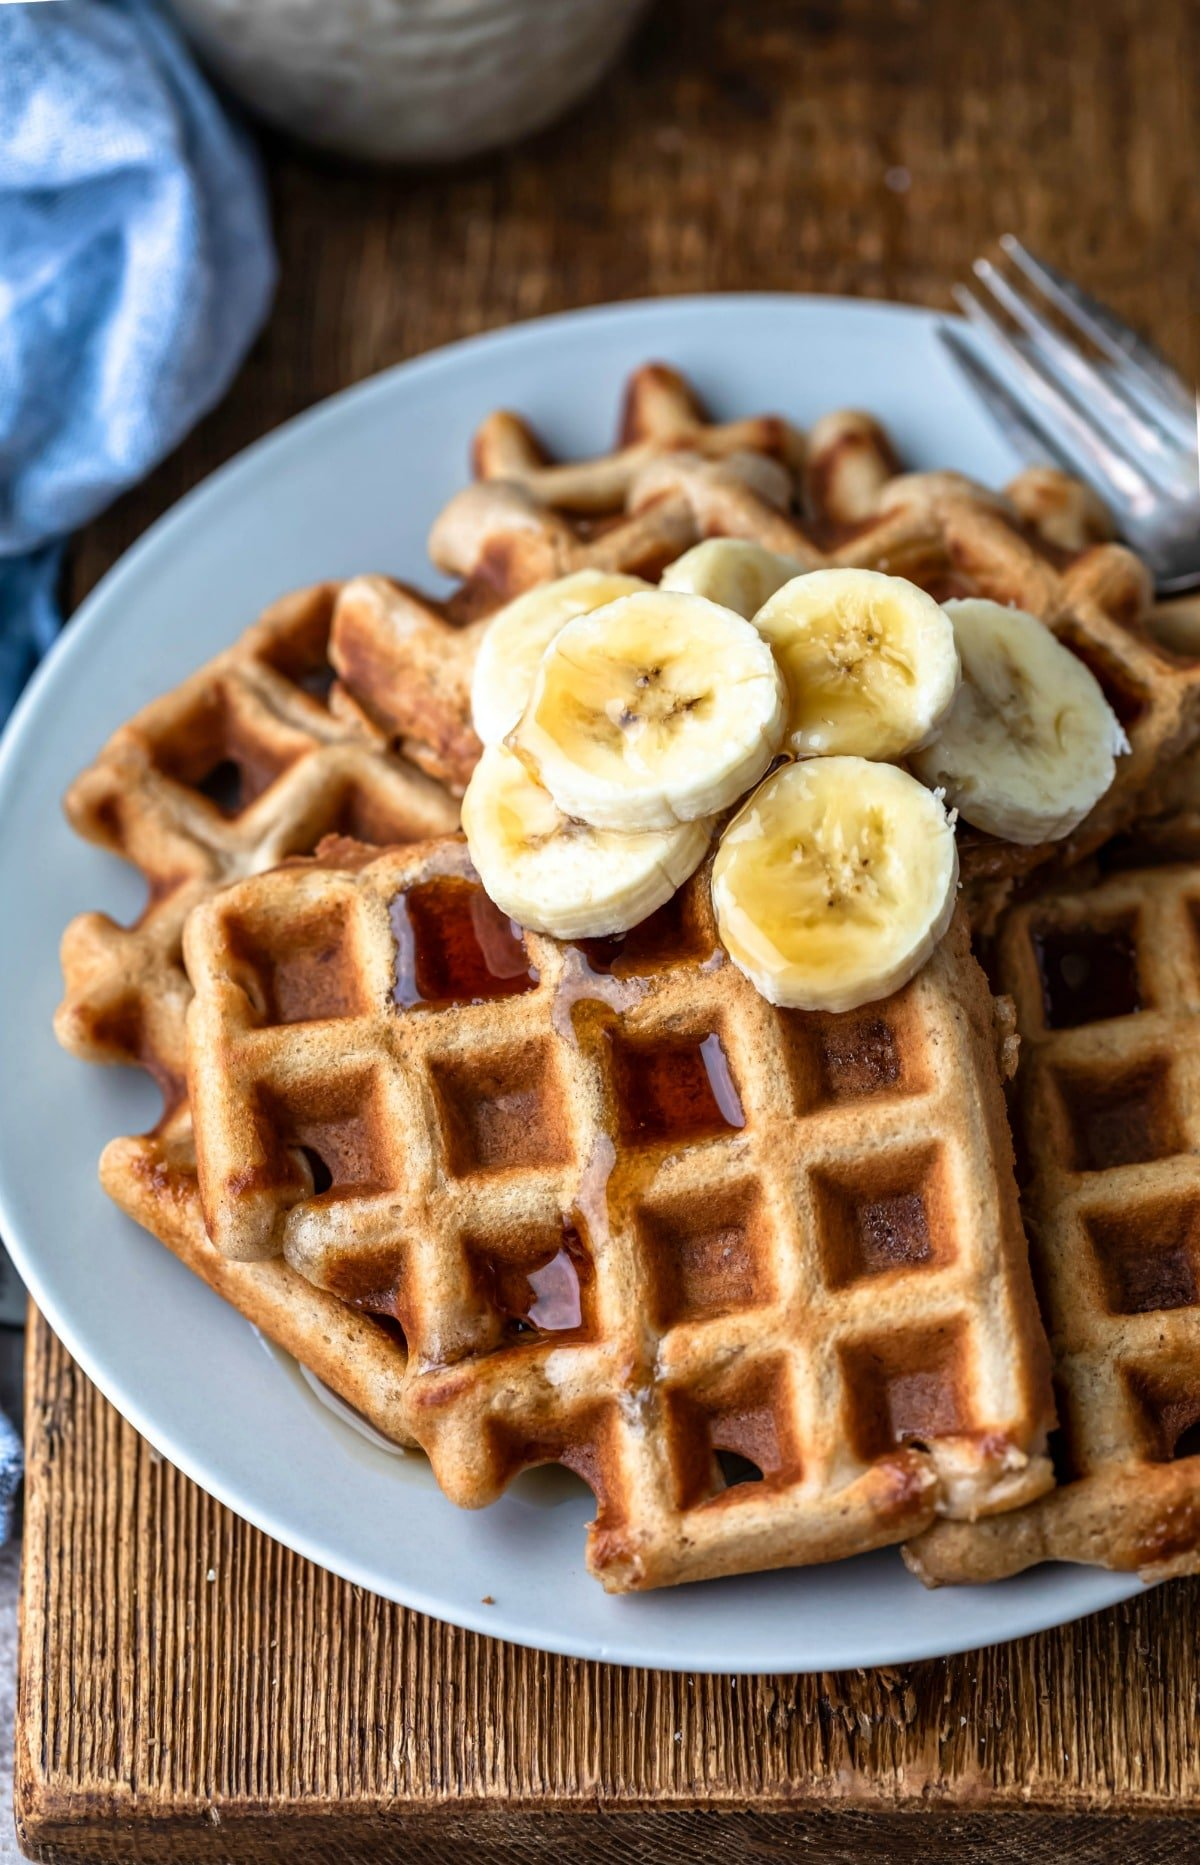 Plate of banana bread waffles topped with sliced bananas